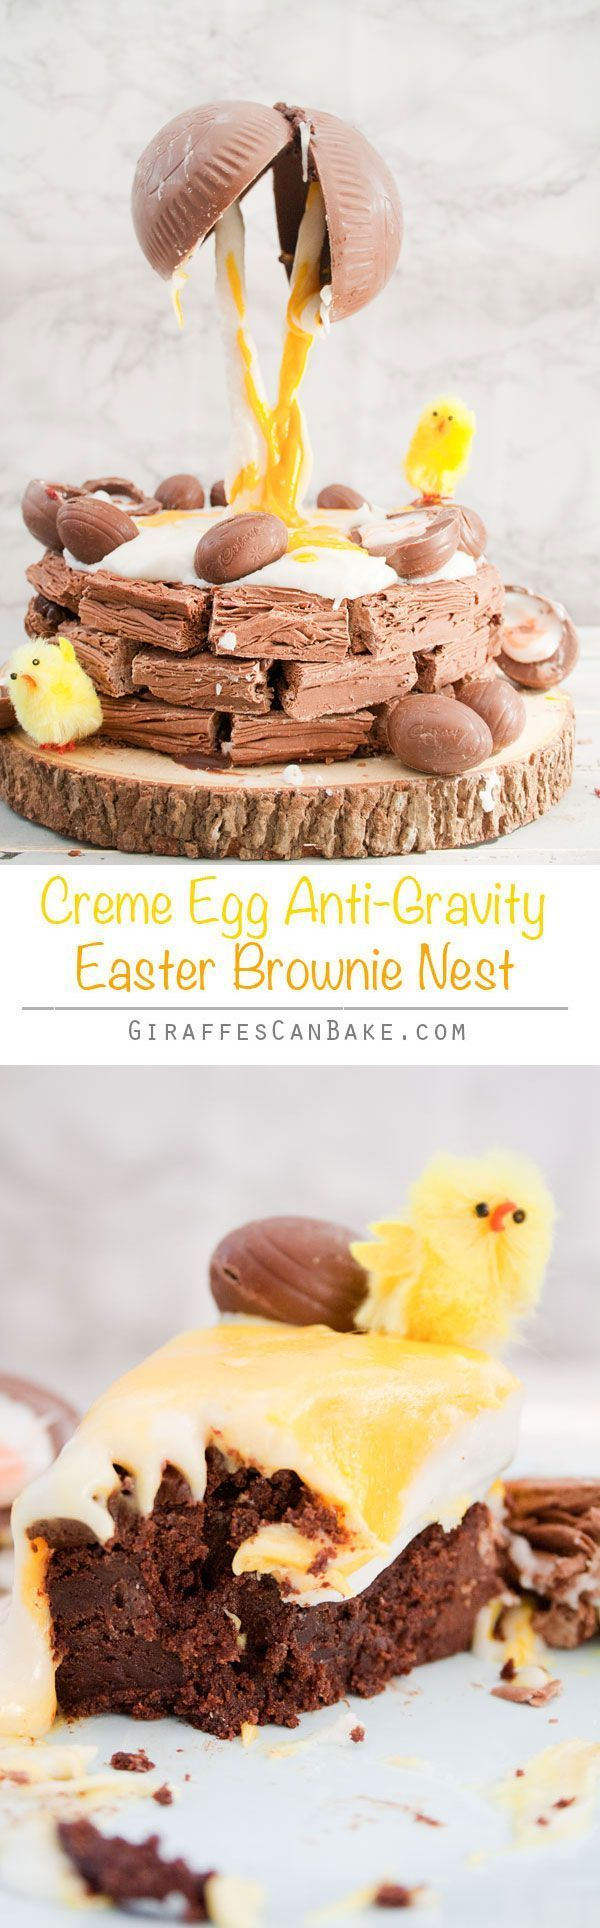 Creme Egg Anti-Gravity Brownie Easter Nest! - A truly decadent showstopper for Easter. Fudgy brownie covered in rich chocolate ganache and sitting in a Cadbury Flake nest. With a cracked chocolate egg spilling Creme Egg filling all over! With a photo guid